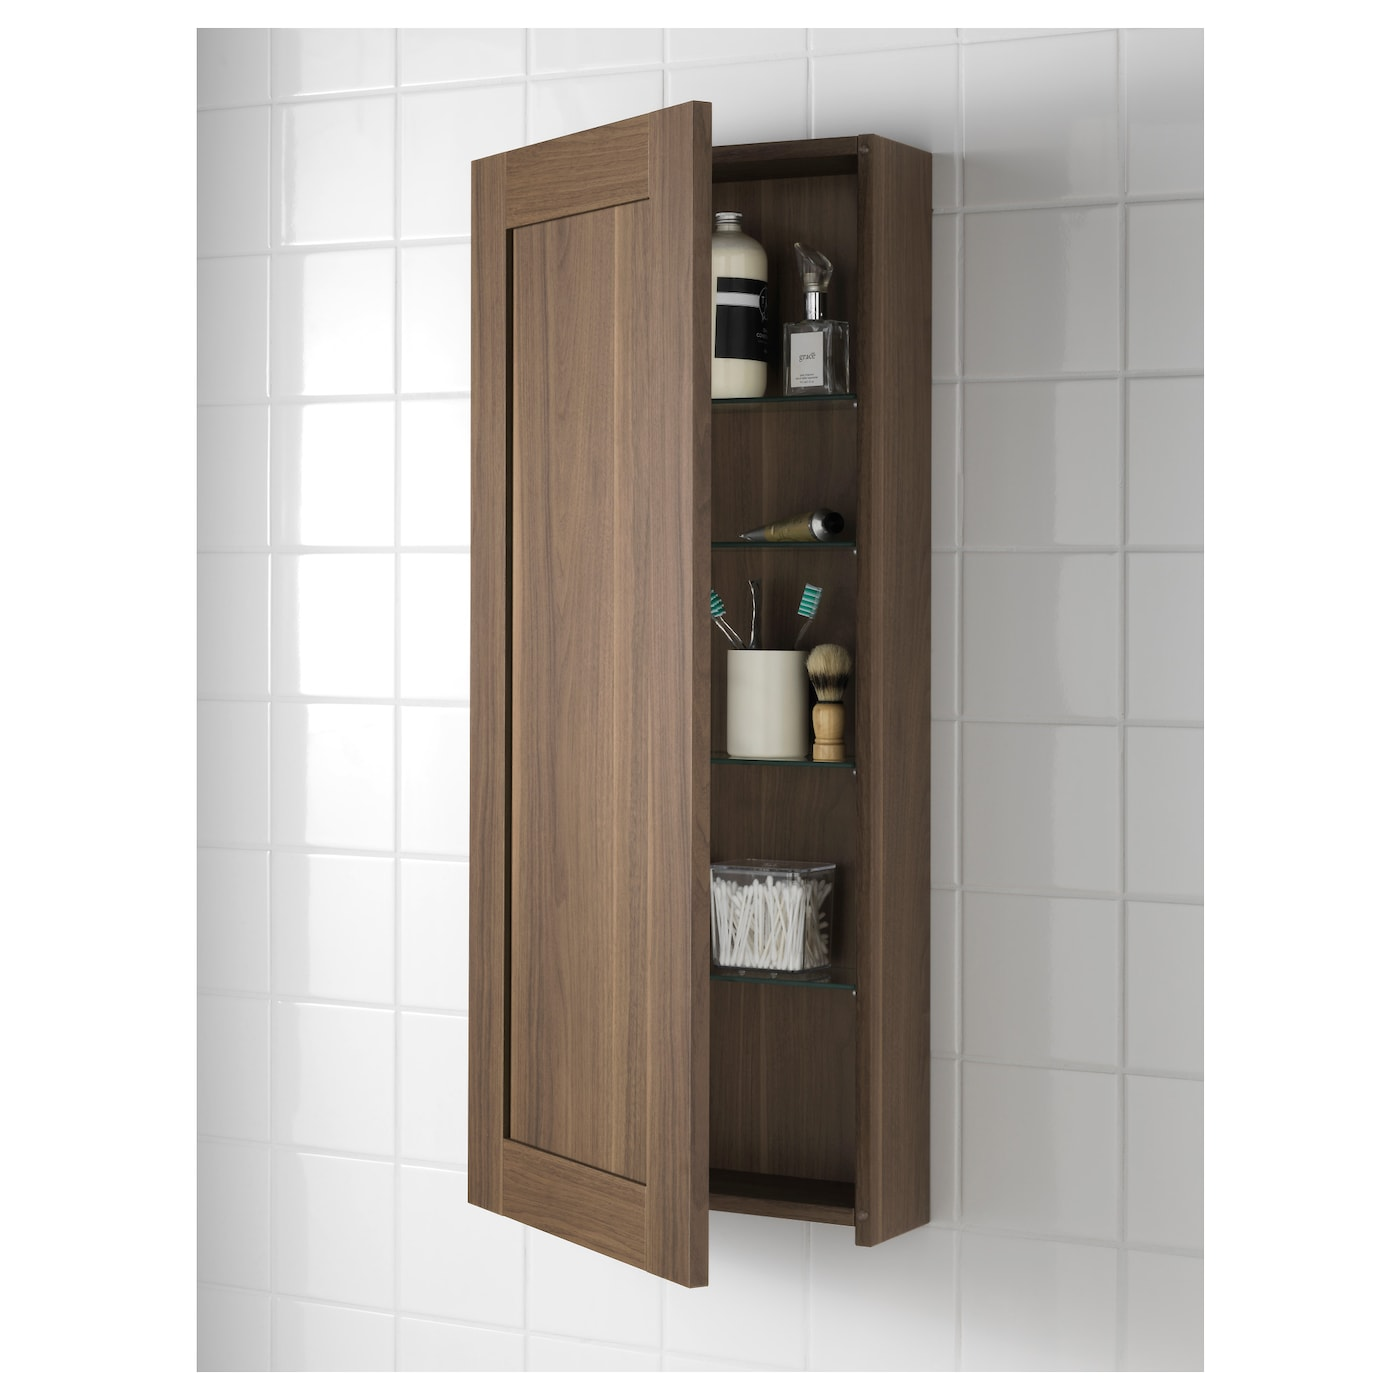 bathroom cabinets ikea storage godmorgon wall cabinet with 1 door walnut effect 40 x 14 x 15640